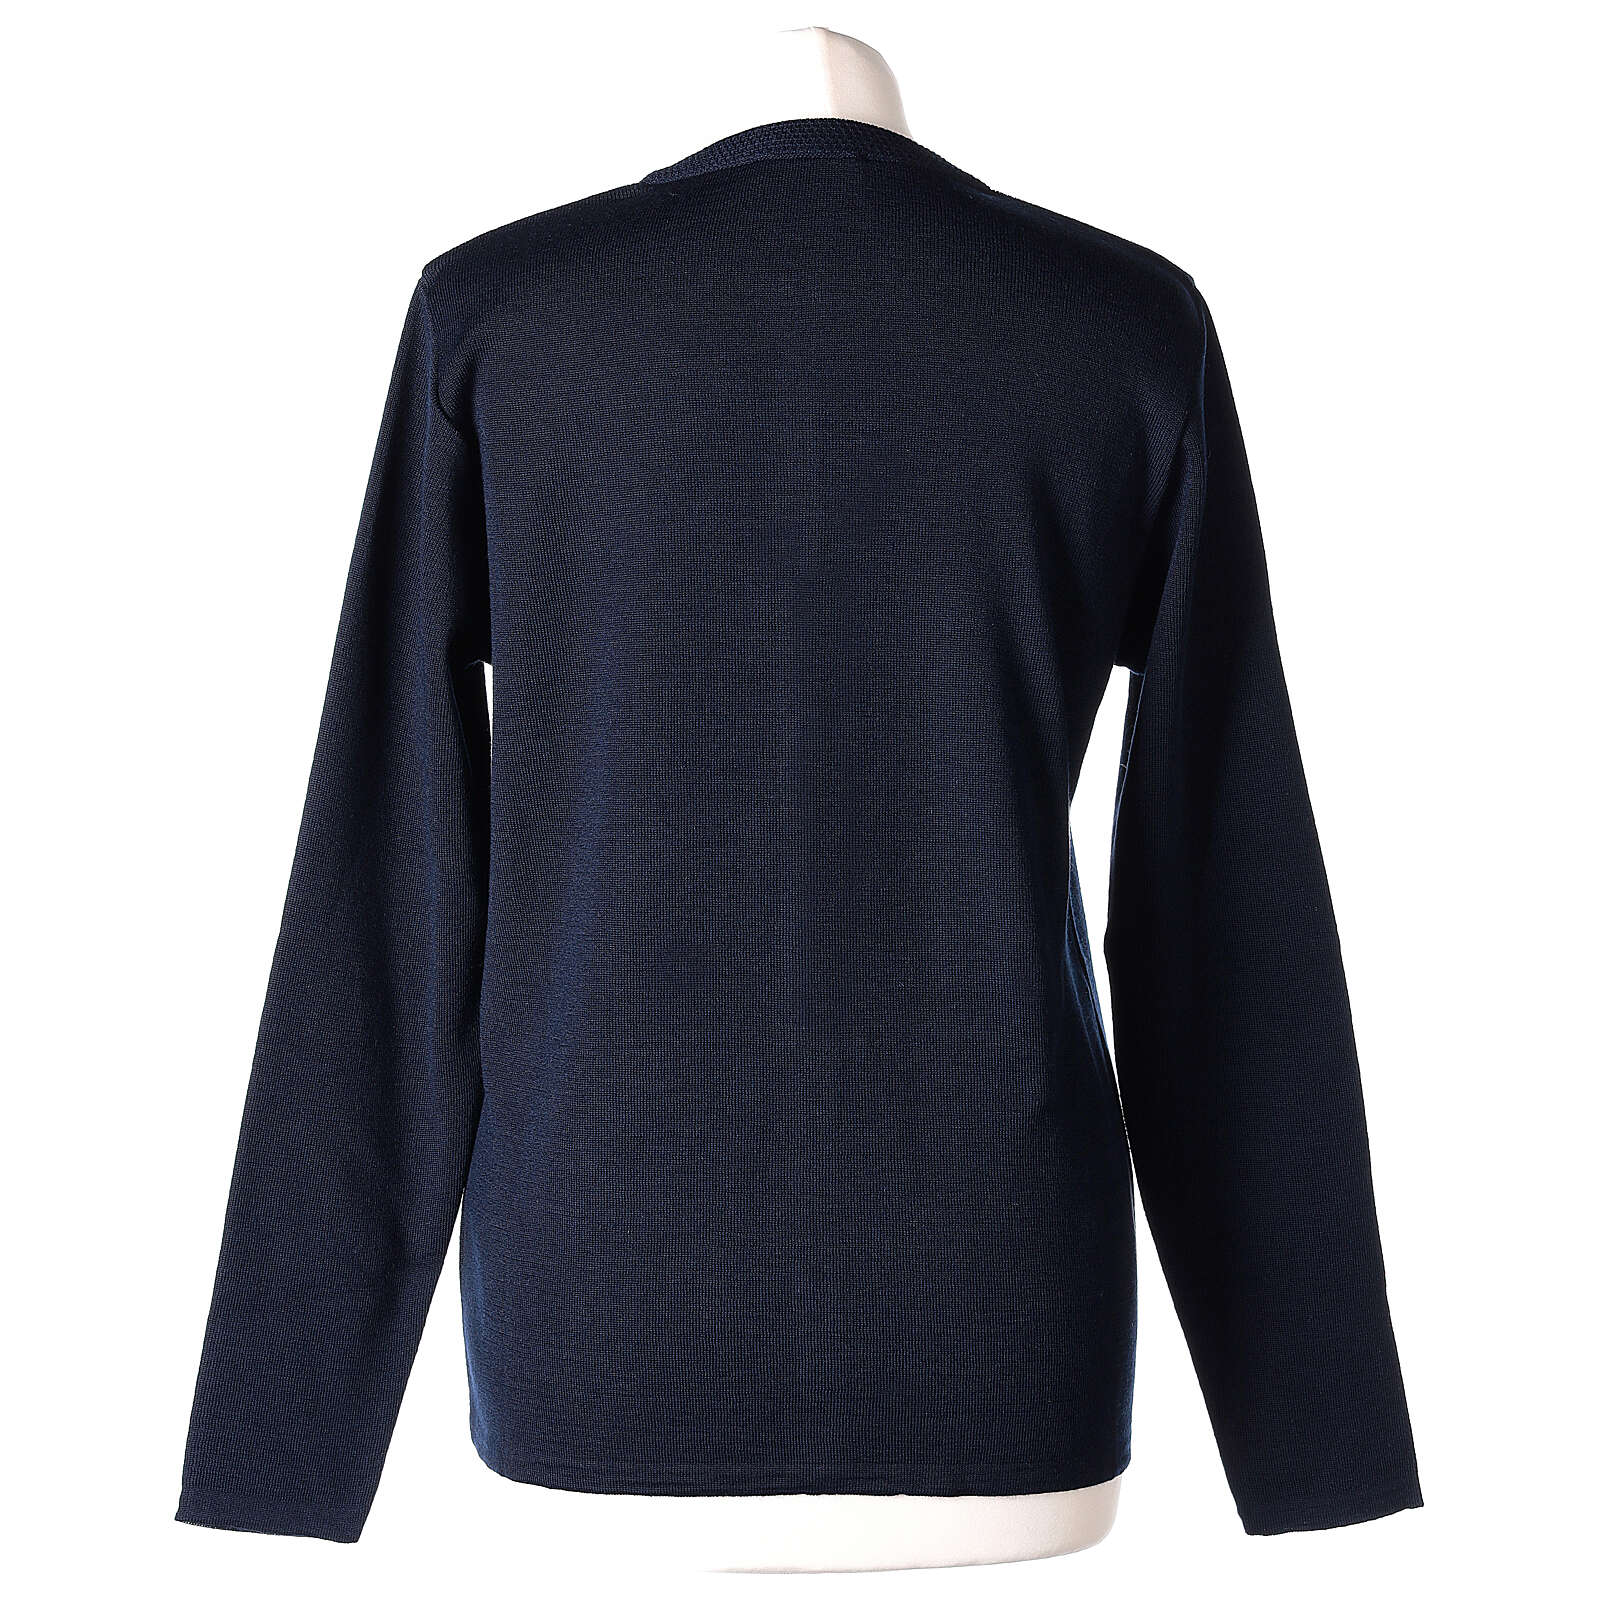 Crew neck blue nun cardigan with pockets plain fabric 50% acrylic 50% merino wool In Primis 4